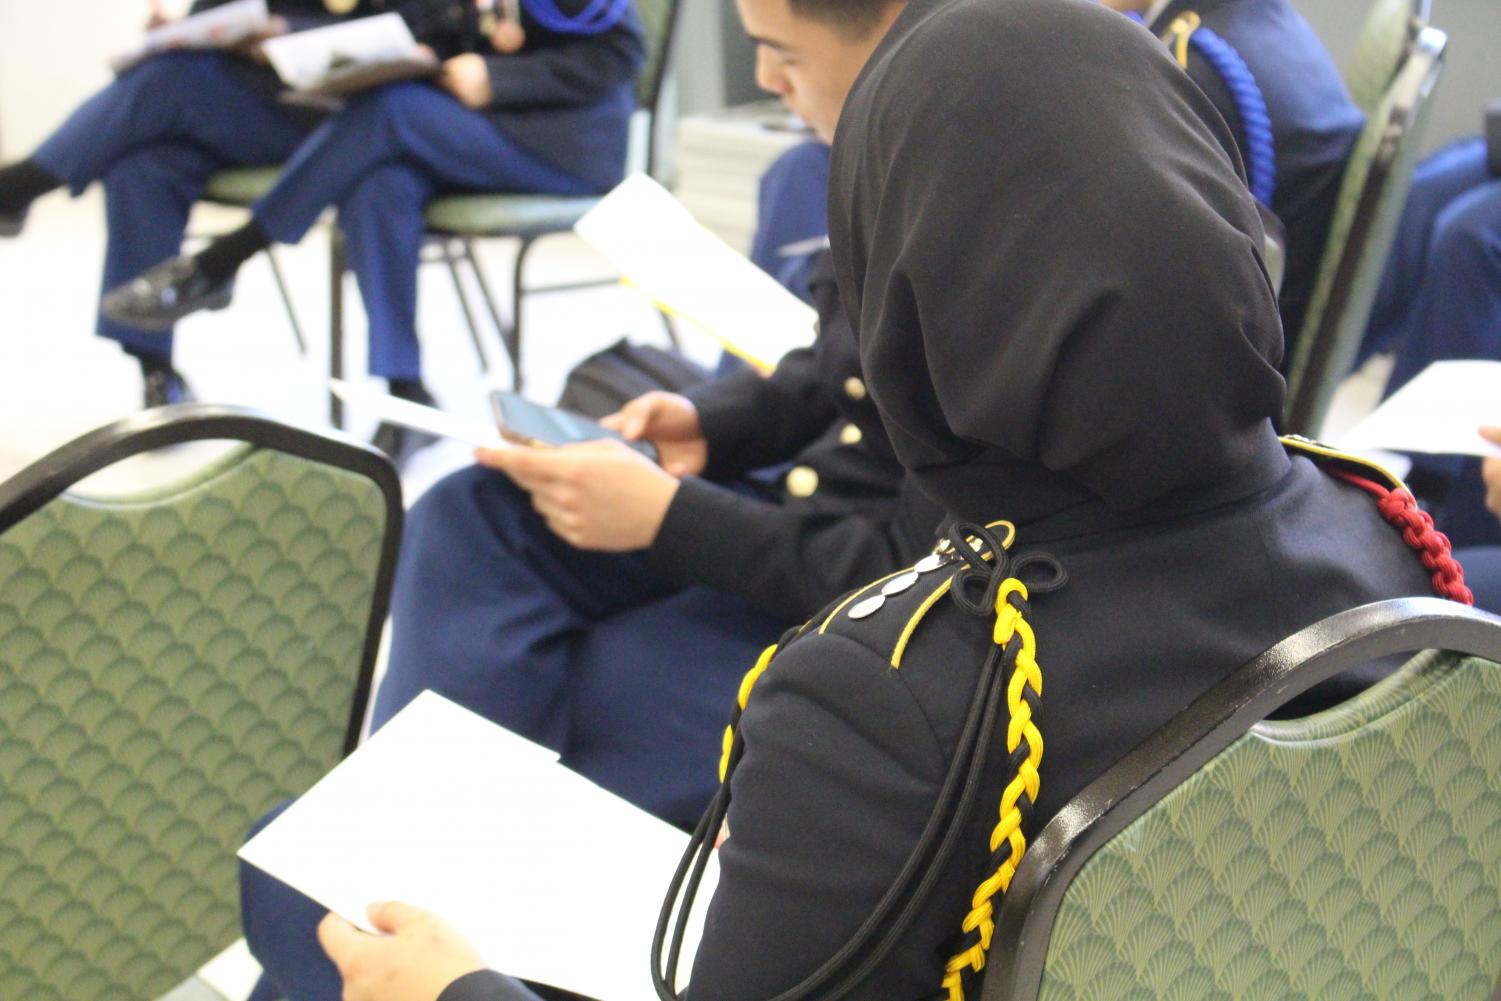 A+senior+and+JROTC+member+listens+to+registration+instructions+while+examining+the+voting+form.